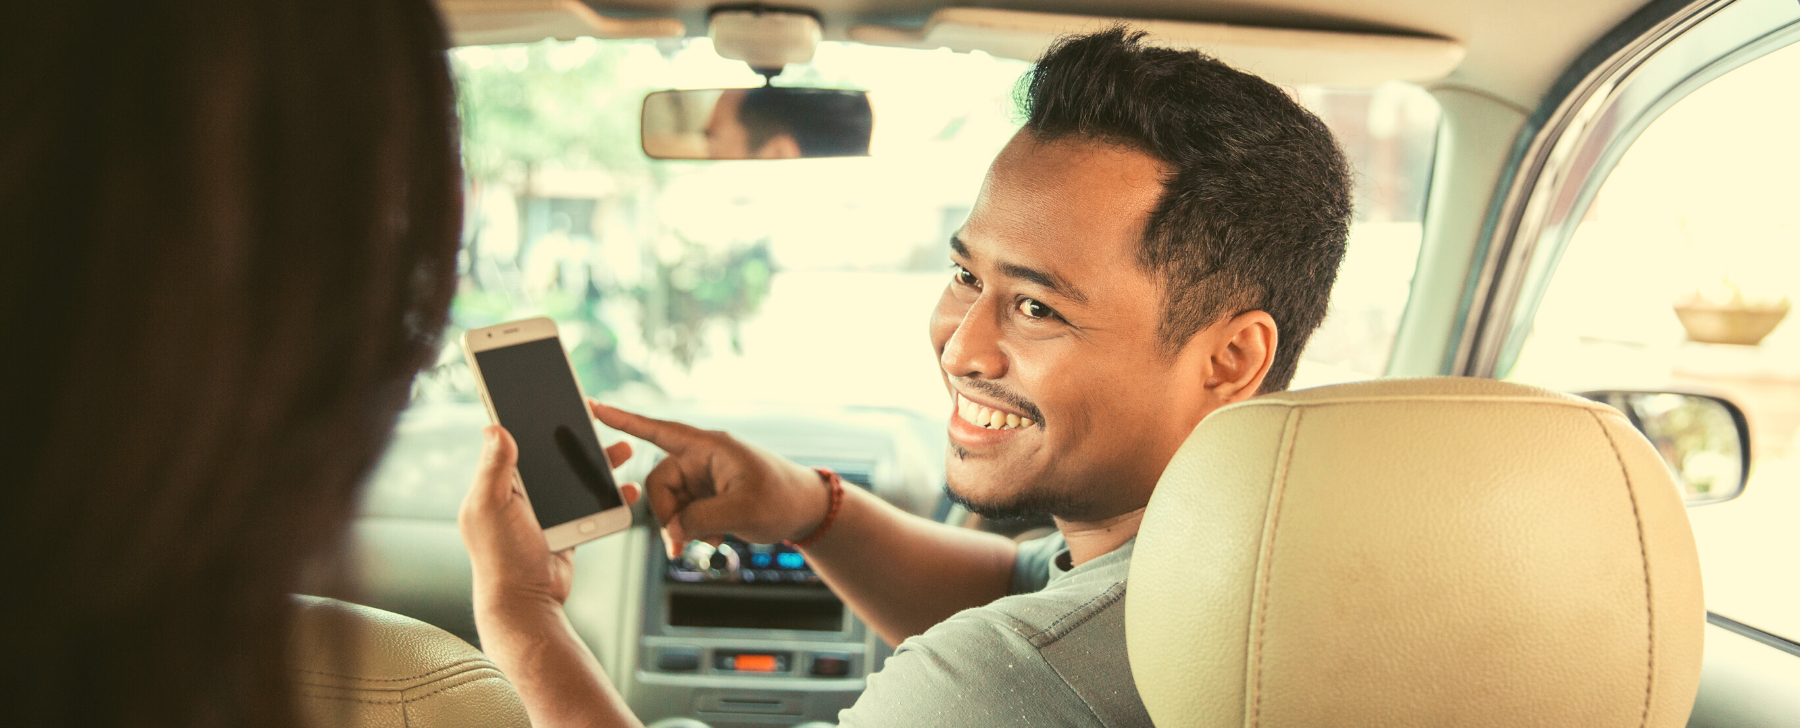 When to register for GST Uber Driver with mobile phone app open looking at passenger in the backseat and smiling,